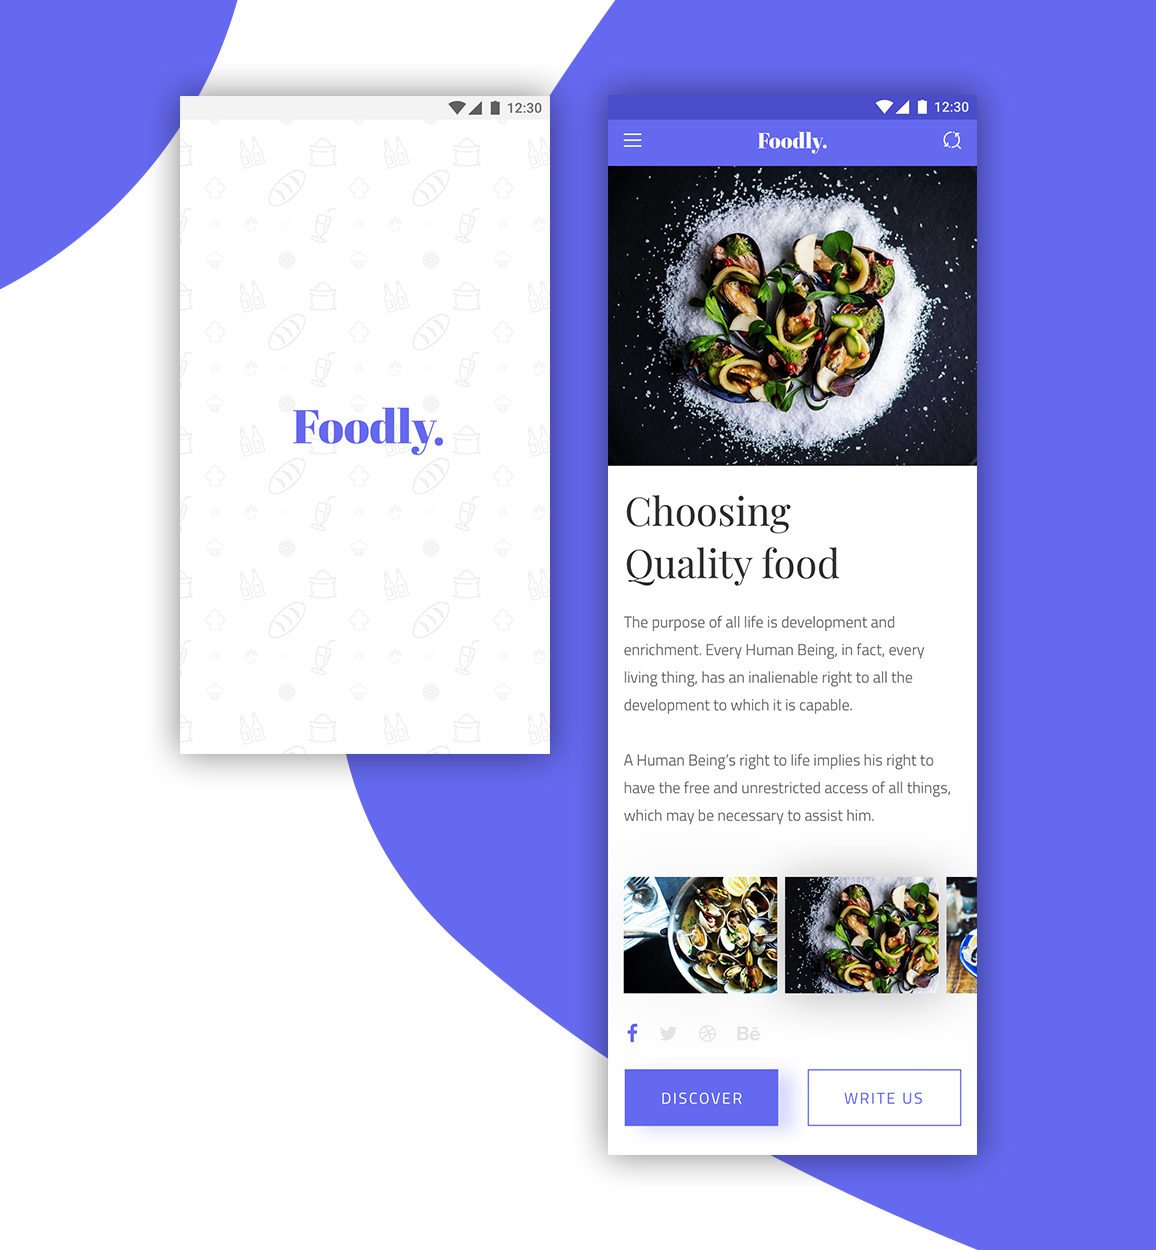 Foodly App - UpLabs